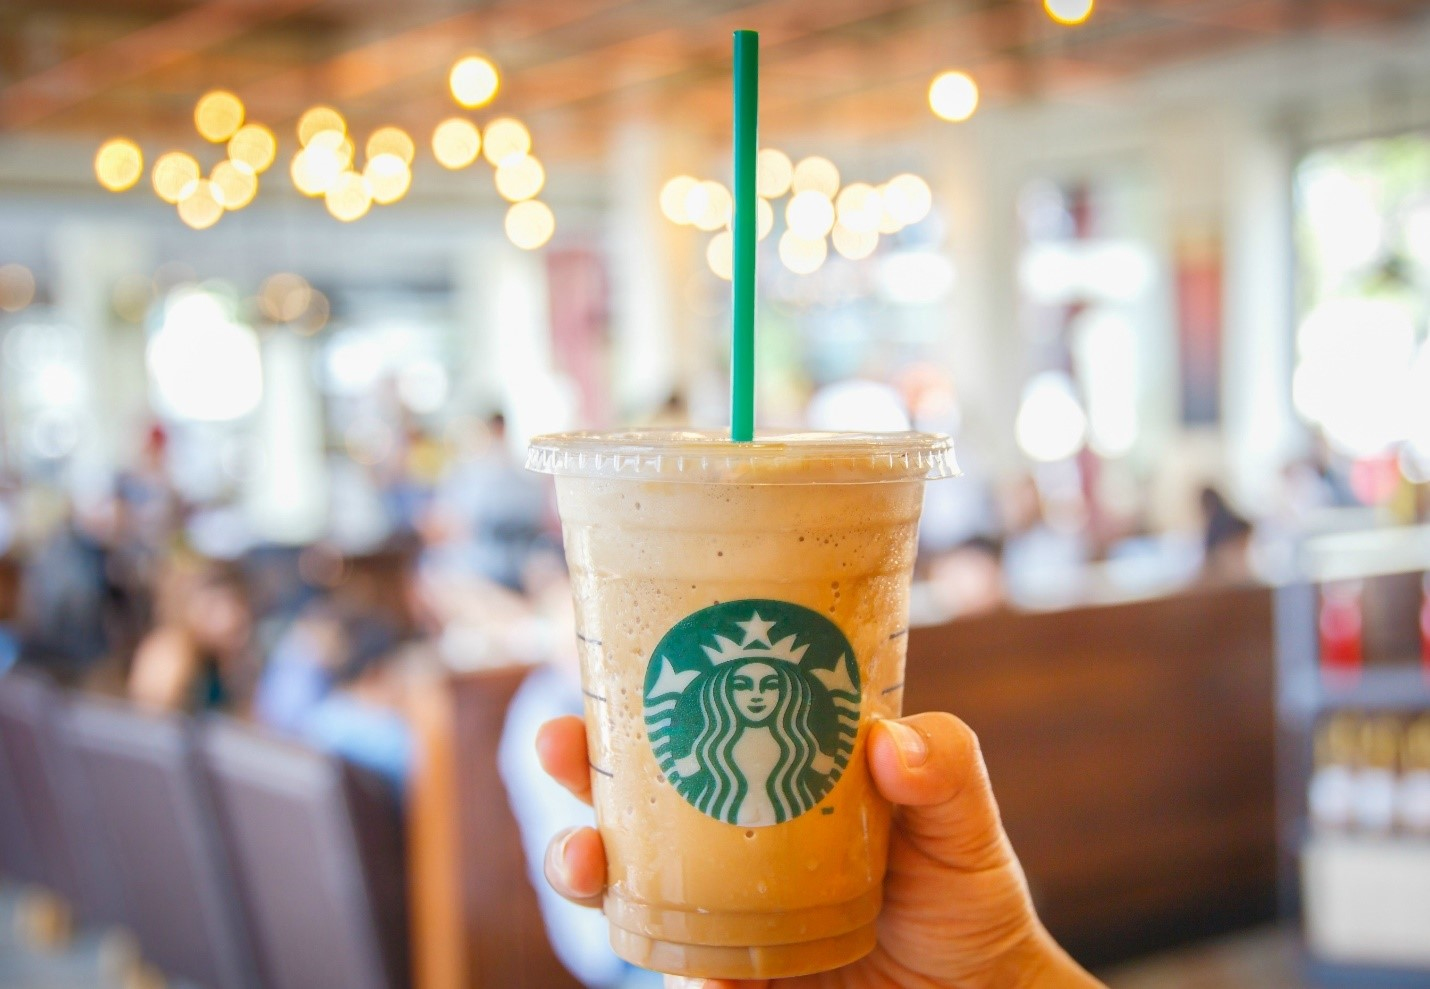 Check out Starbucks coupons before you buy coffee